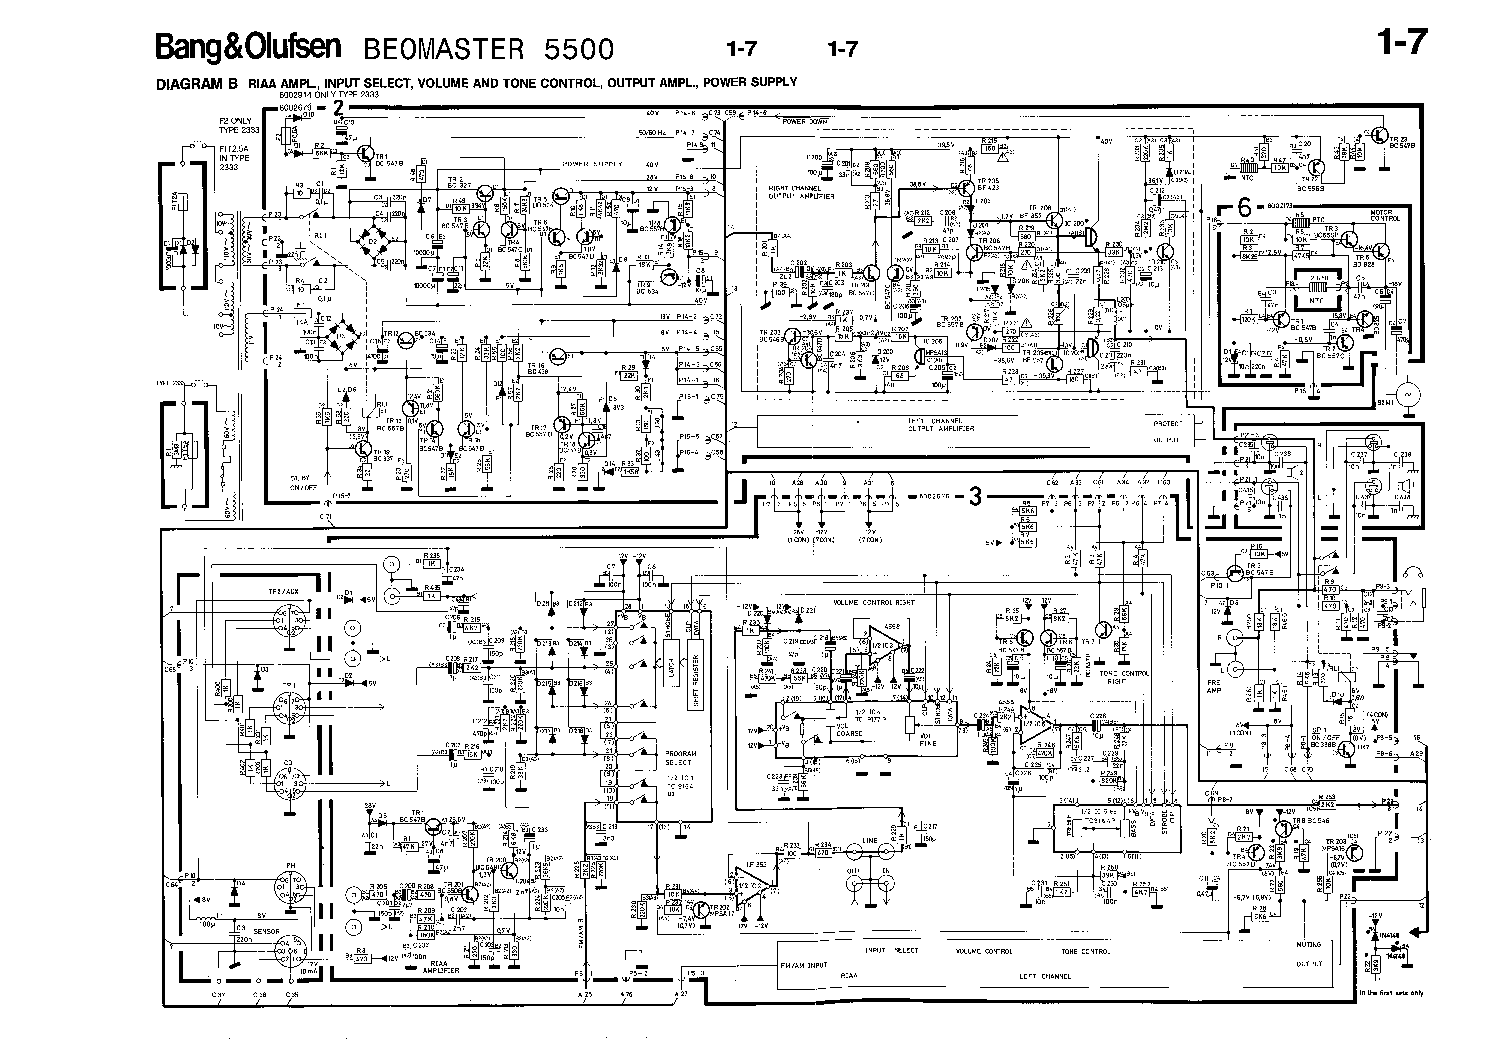 hight resolution of bang olufsen beomaster 5500 service manual 2nd page